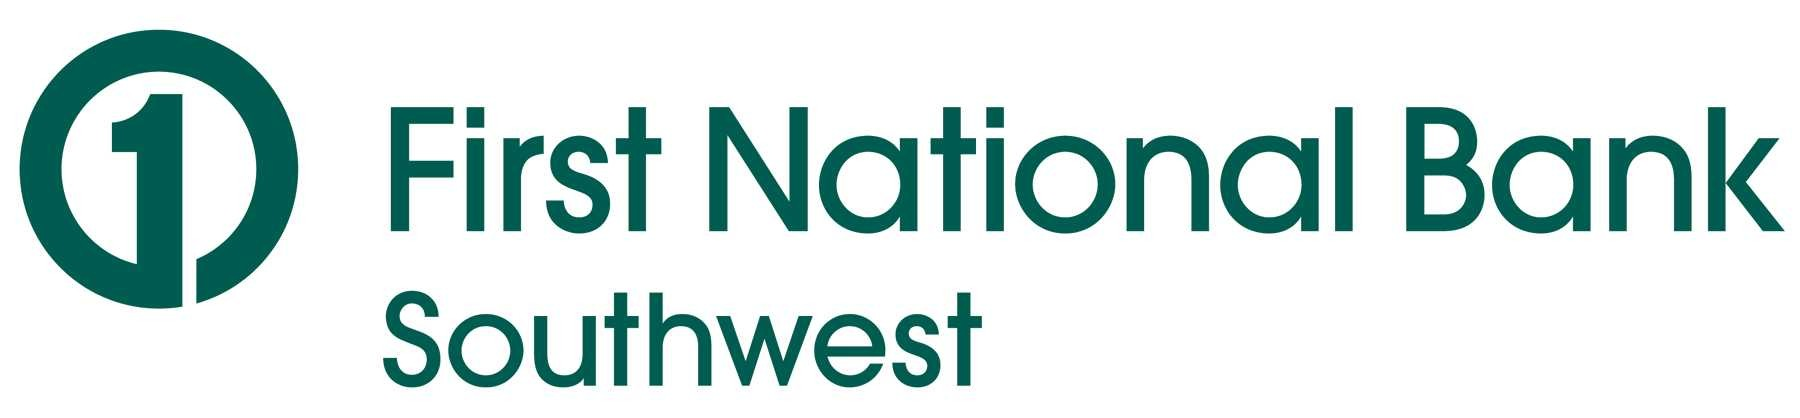 First National Bank Southwest